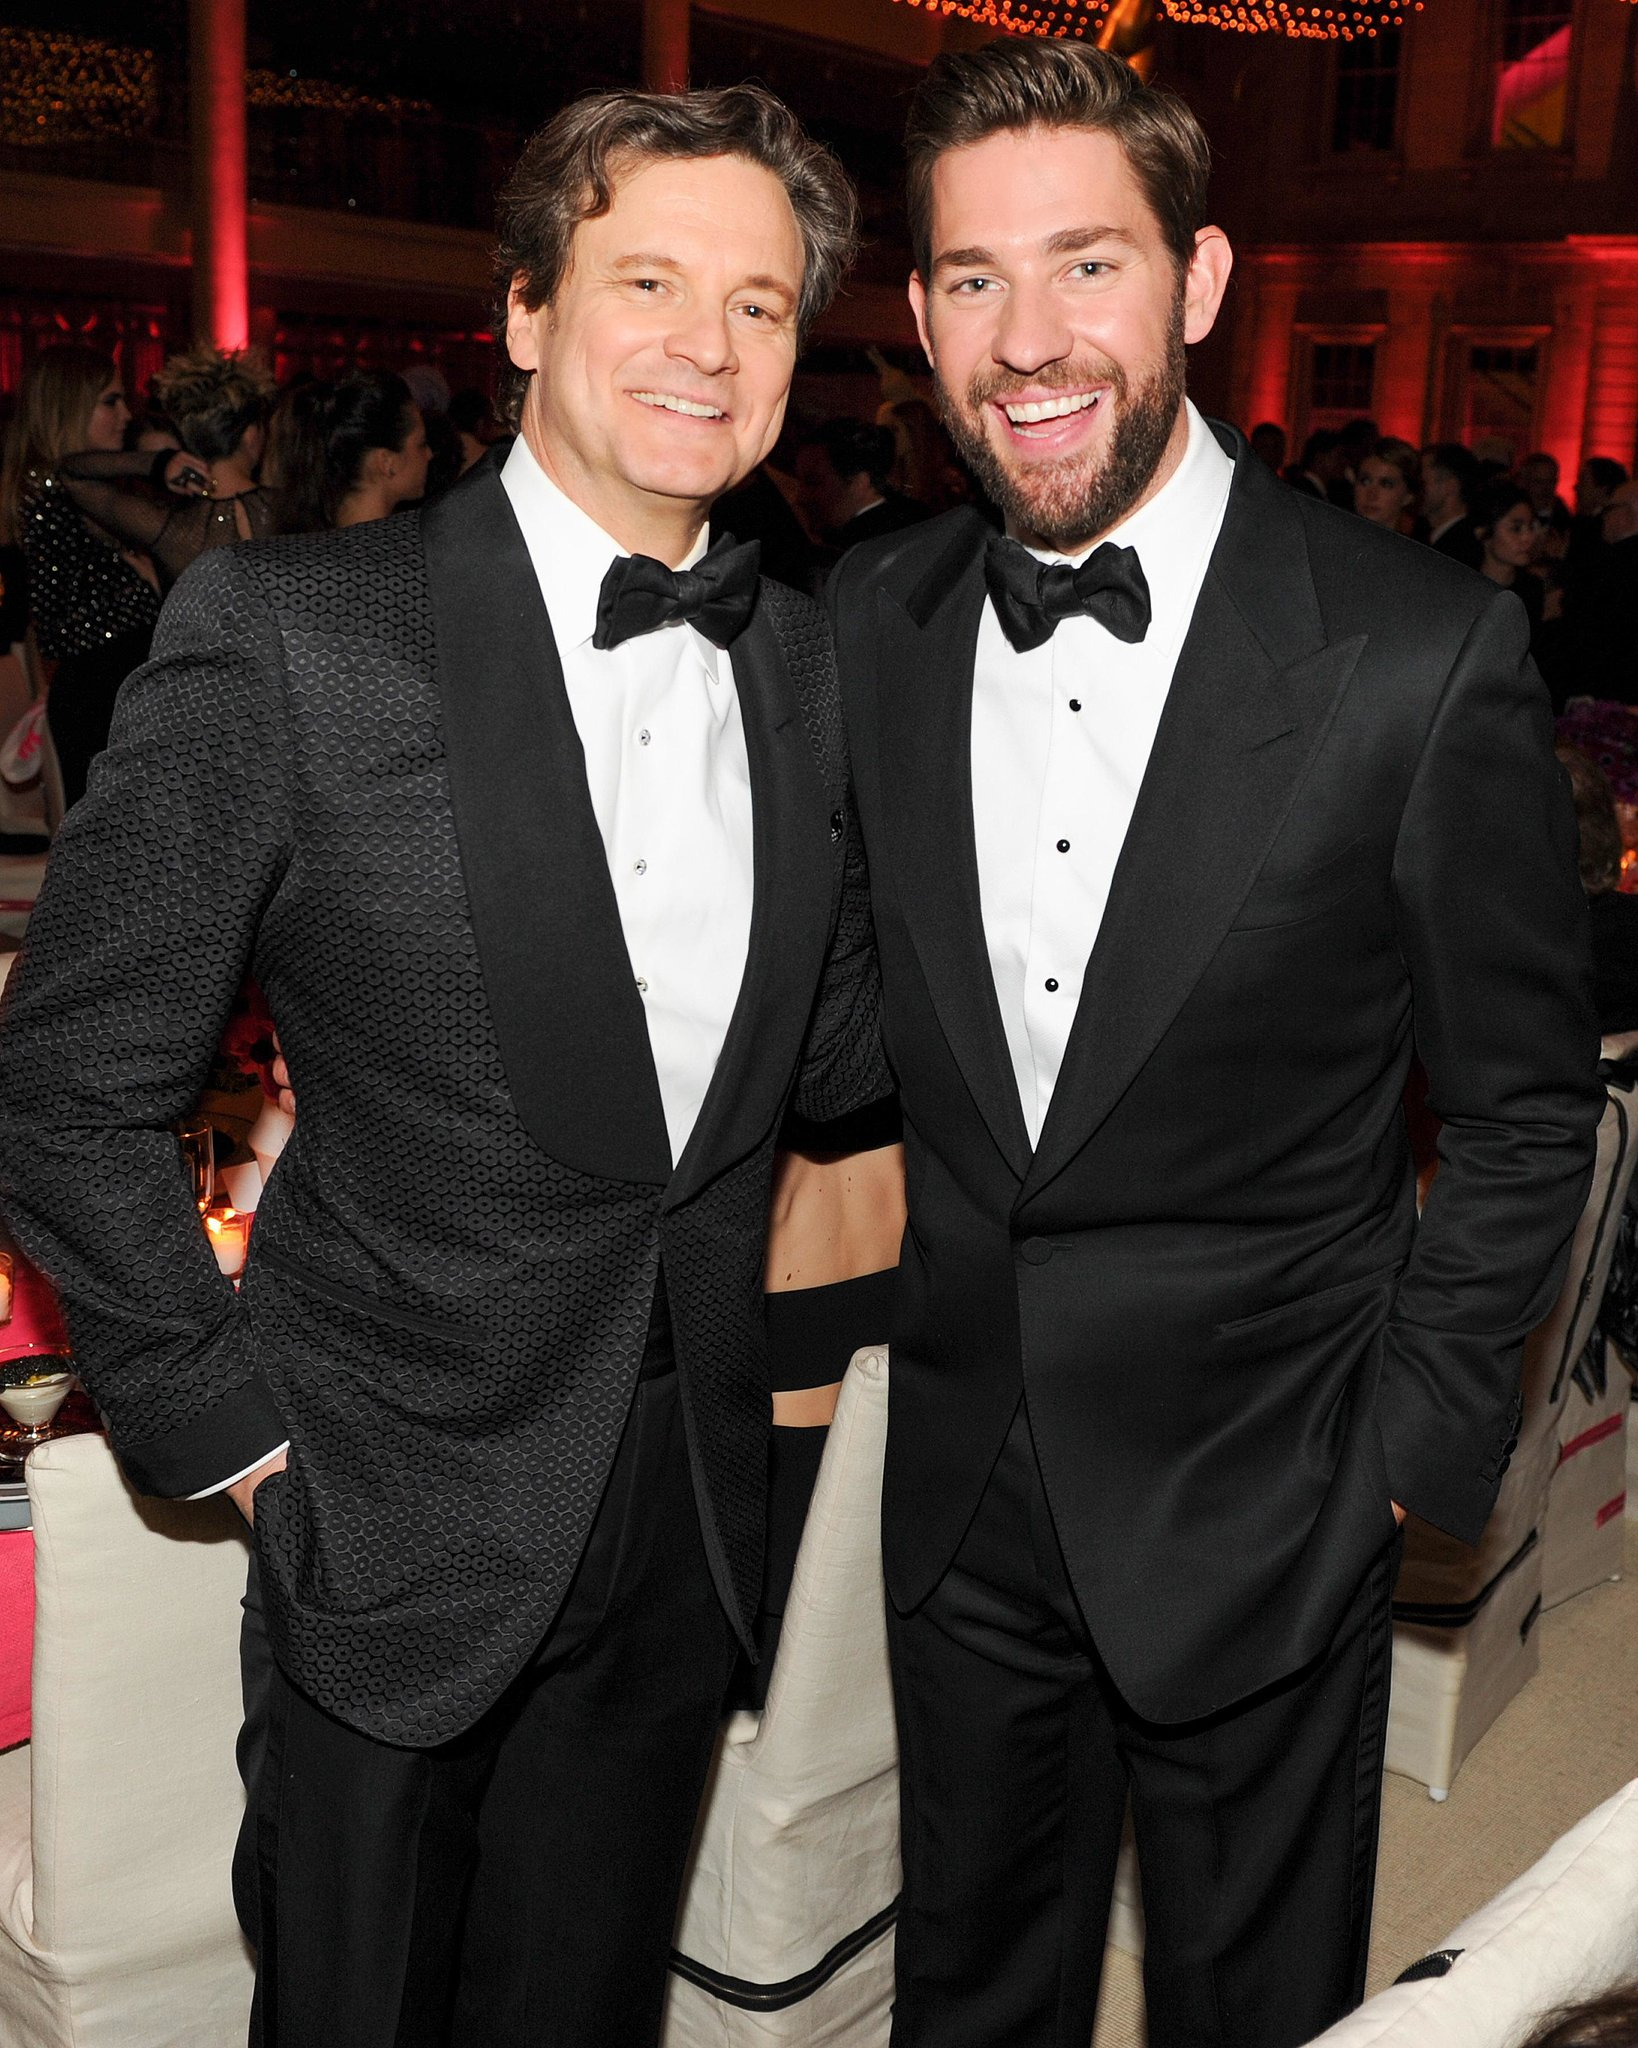 John Krasinski and Colin Firth suited up inside the Met Gala.  Source: Billy Farrell/BFANYC.co